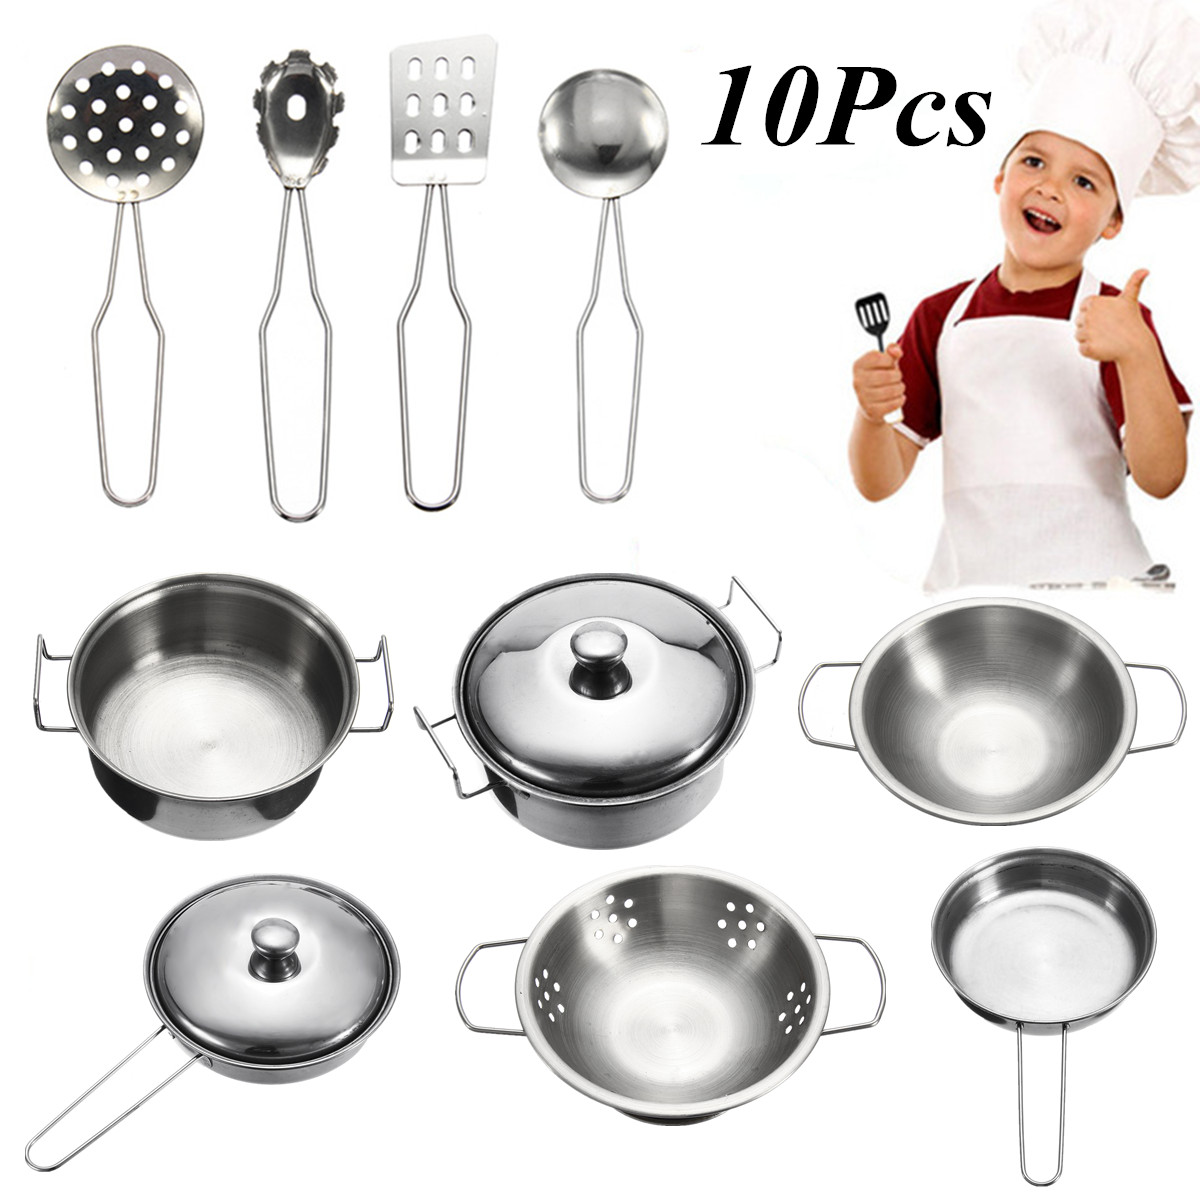 10Pcs Stainless Steel Kids Kitchen Toys Mini Cooking Cookware Children Pretend Toy Fun Play Tools Safe Exquisite Workmanship